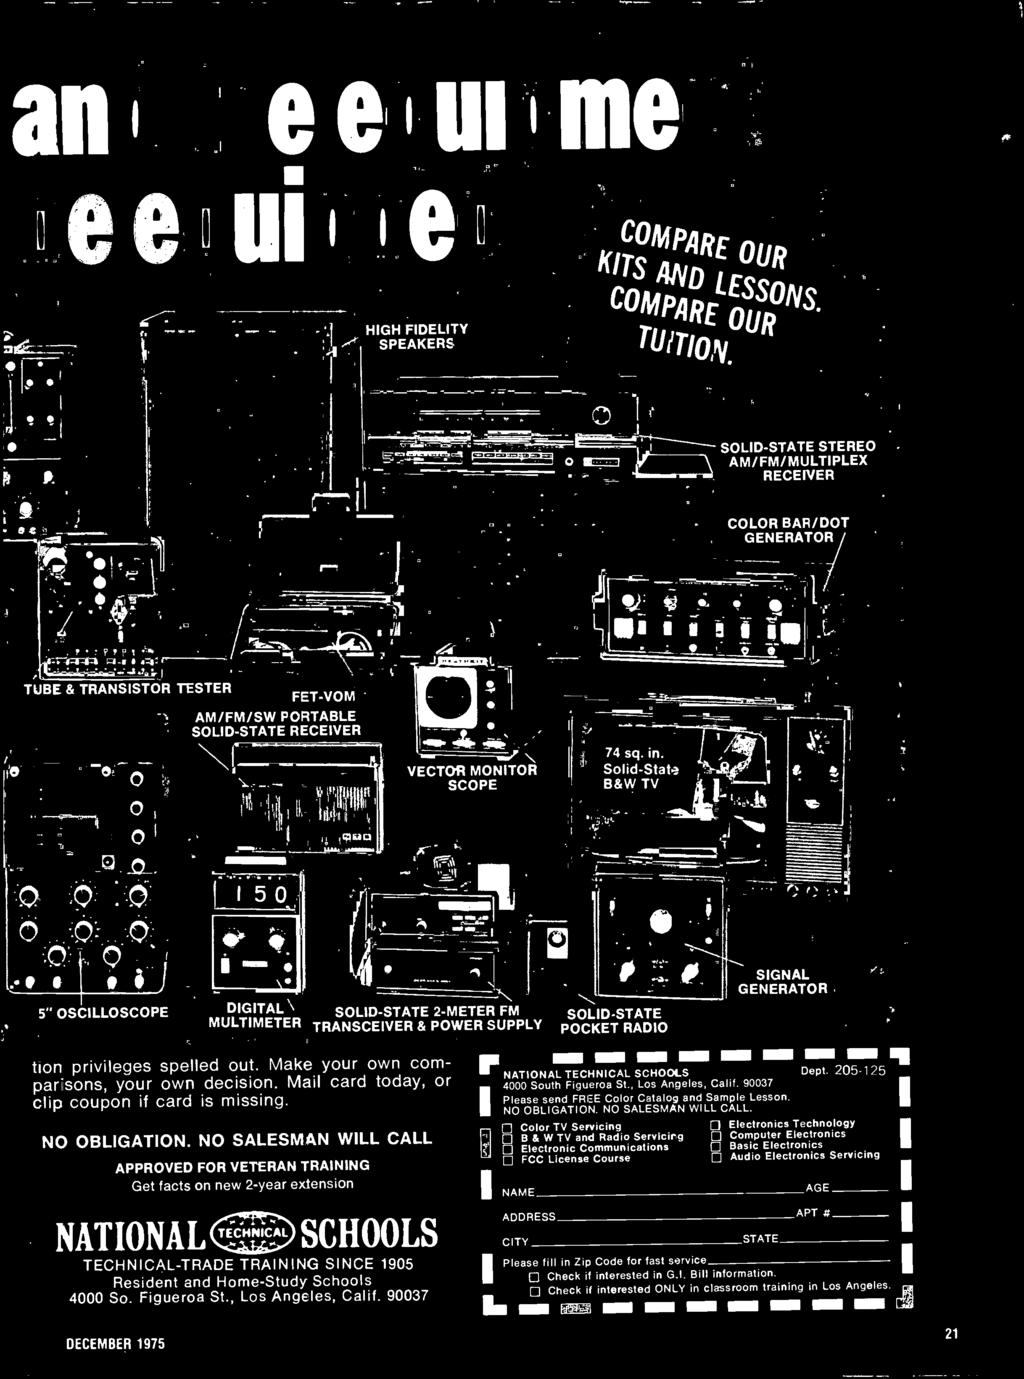 Turntable Iiecimiicus The 4 Hew Cassette Tapes7 Iiiirsch Hock Generator Schematic Beck Mag Ic Pulser Emp Pulse F Card Is Missing No Oblgaton Salesman Wll Call Approved For Veteran Tranng Get Facts